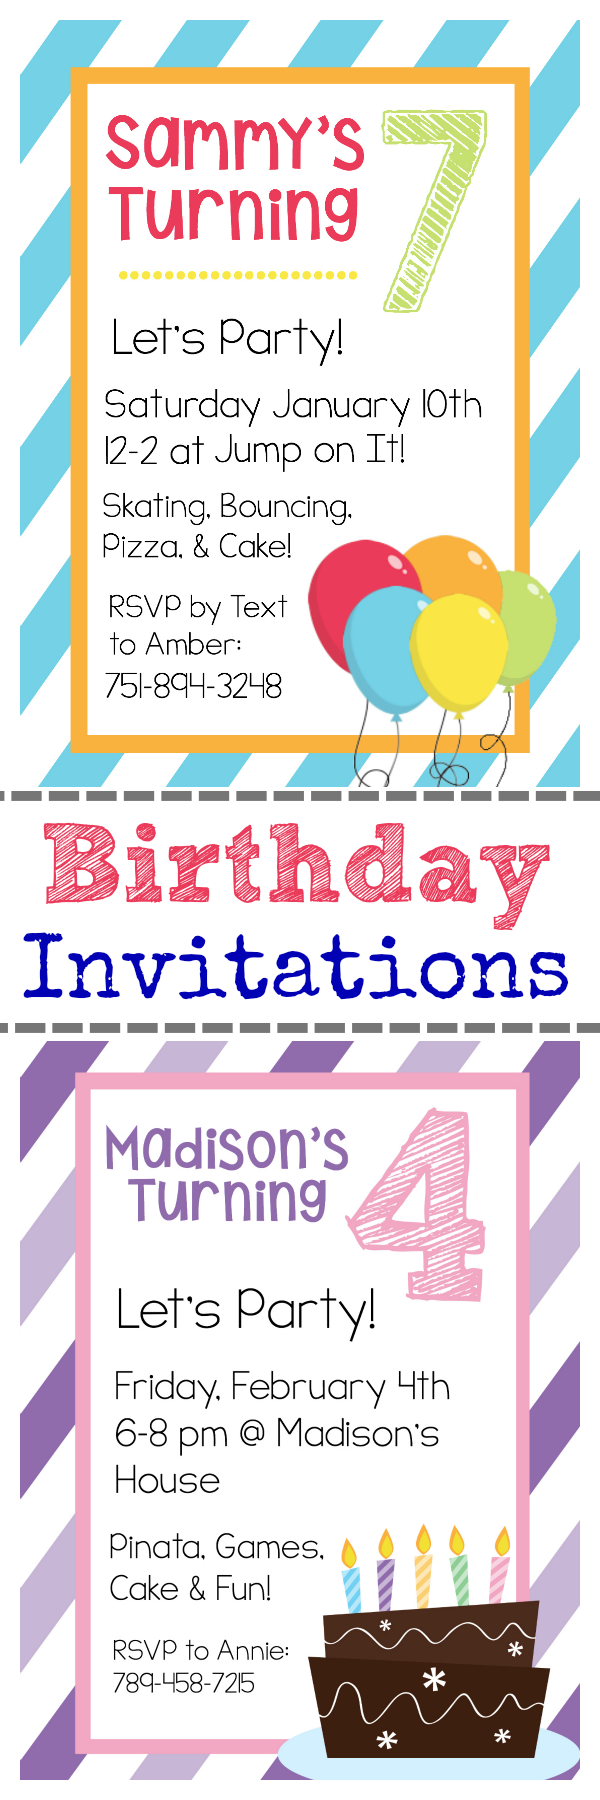 Free Printable Birthday Invitation Templates | Pinterest | Free ...